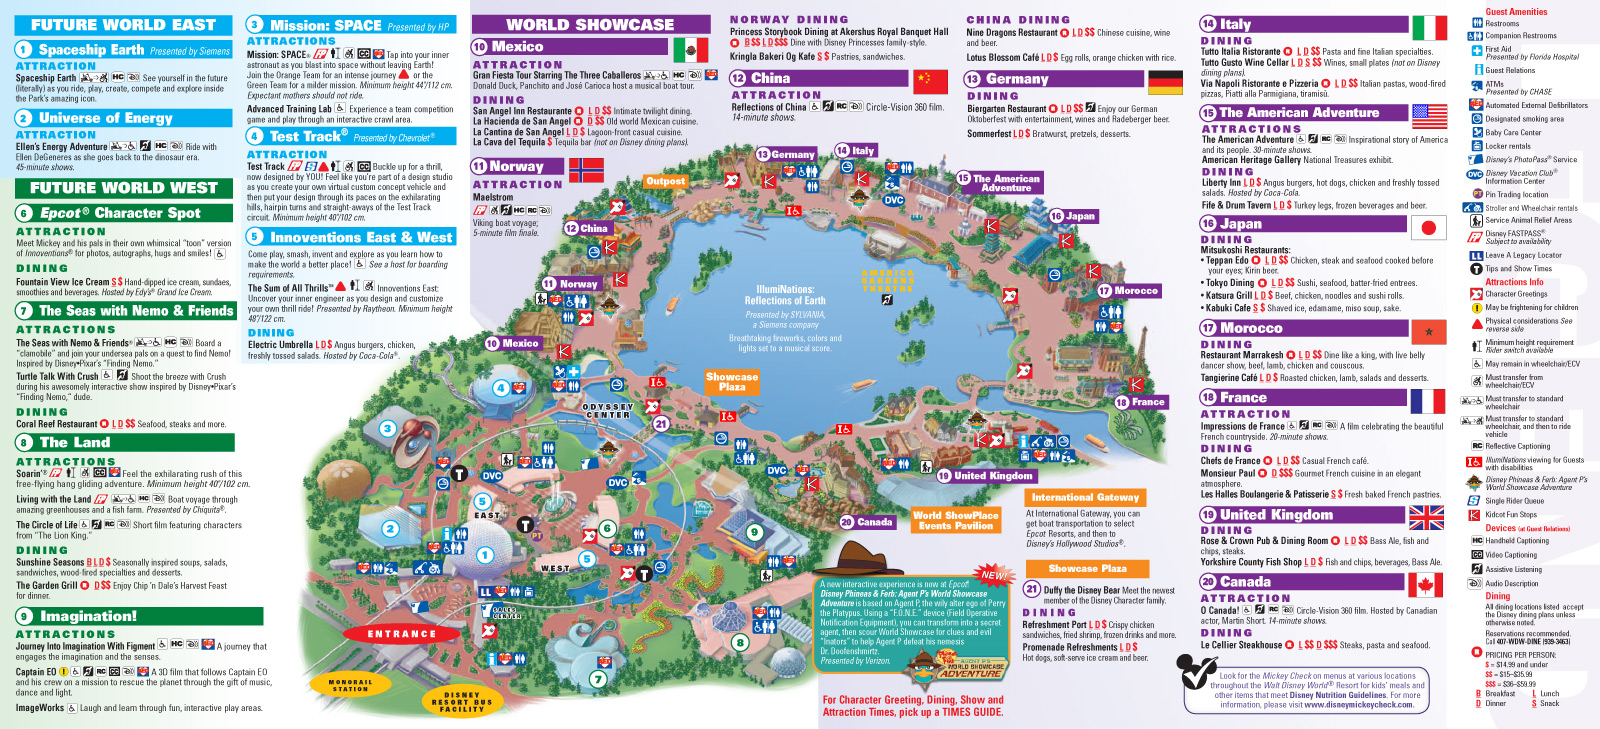 Park maps 2013 photo 4 of 8 gumiabroncs Choice Image